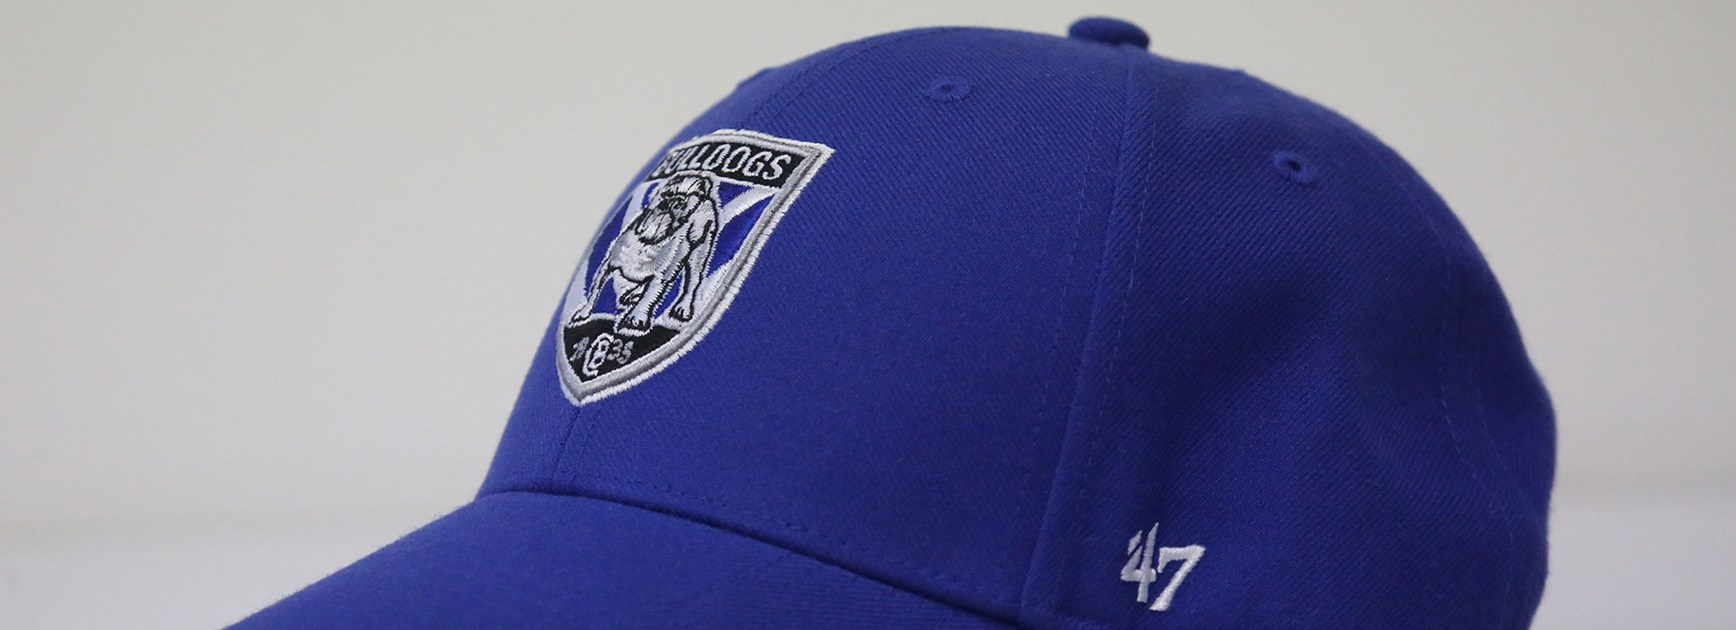 '47 to be the new Official Headwear Partner of the Bulldogs